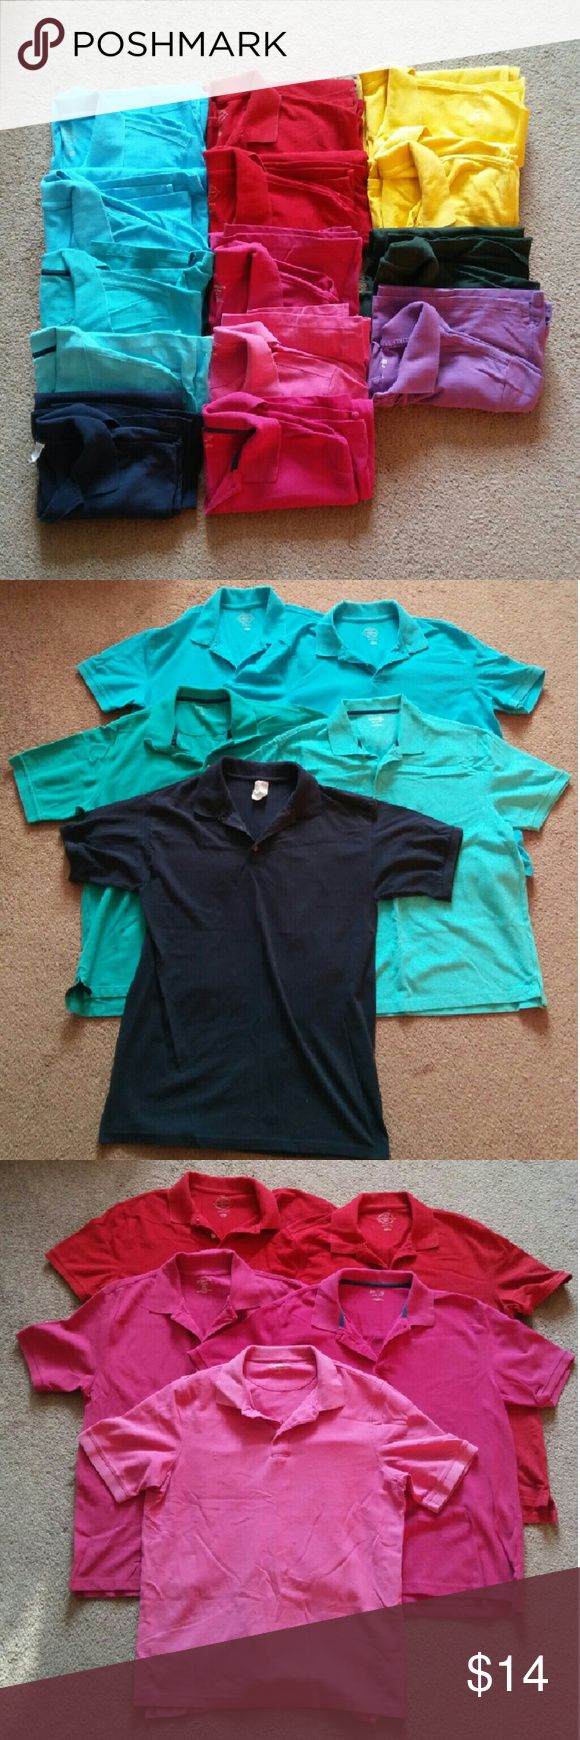 Polo Bundle - Bundle includes 14 Polos, all size large - 5 Blues (Gildan, St Johns Bay, NorthCrest)  - 2 red, 3 pink (St Johns Bay, Croft & Barrow) - 2 yellow, 1 green, 1 purple (St Johns Bay, Jerzees, Mossimo xl) - Entire bundle for $14  **PLEASE BE AWARE that I live in a RURAL area far from town & only go in 1-3 times per week, usually Tuesday & Friday. I will always send a message to my buyers letting you know when I will mail your package. Please be patient! St. John's Bay Tops Tees…